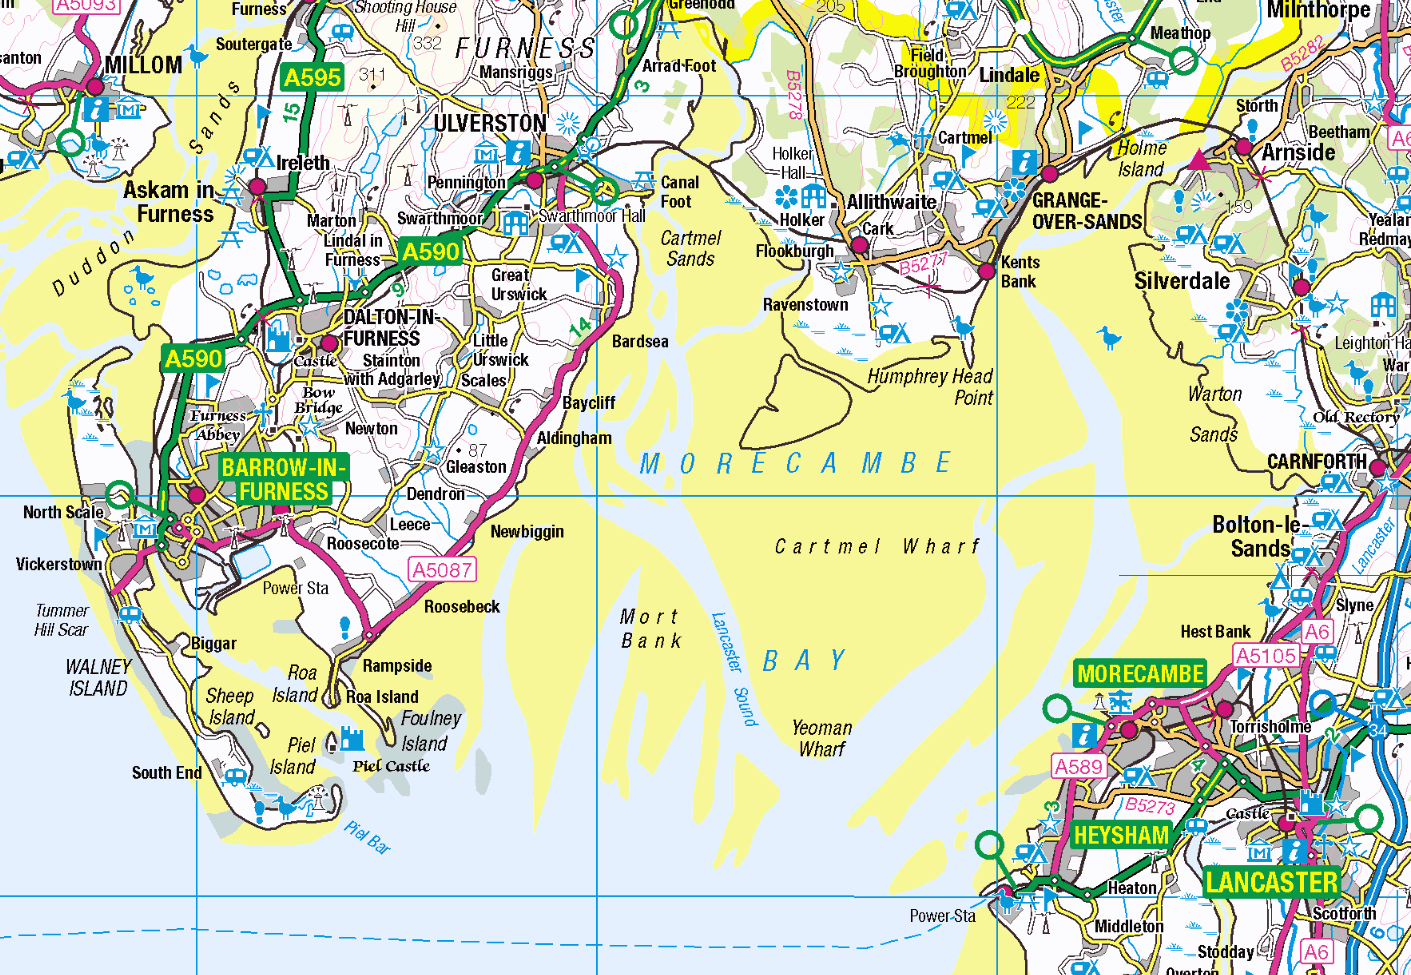 Morecambe_Bay_OS_map